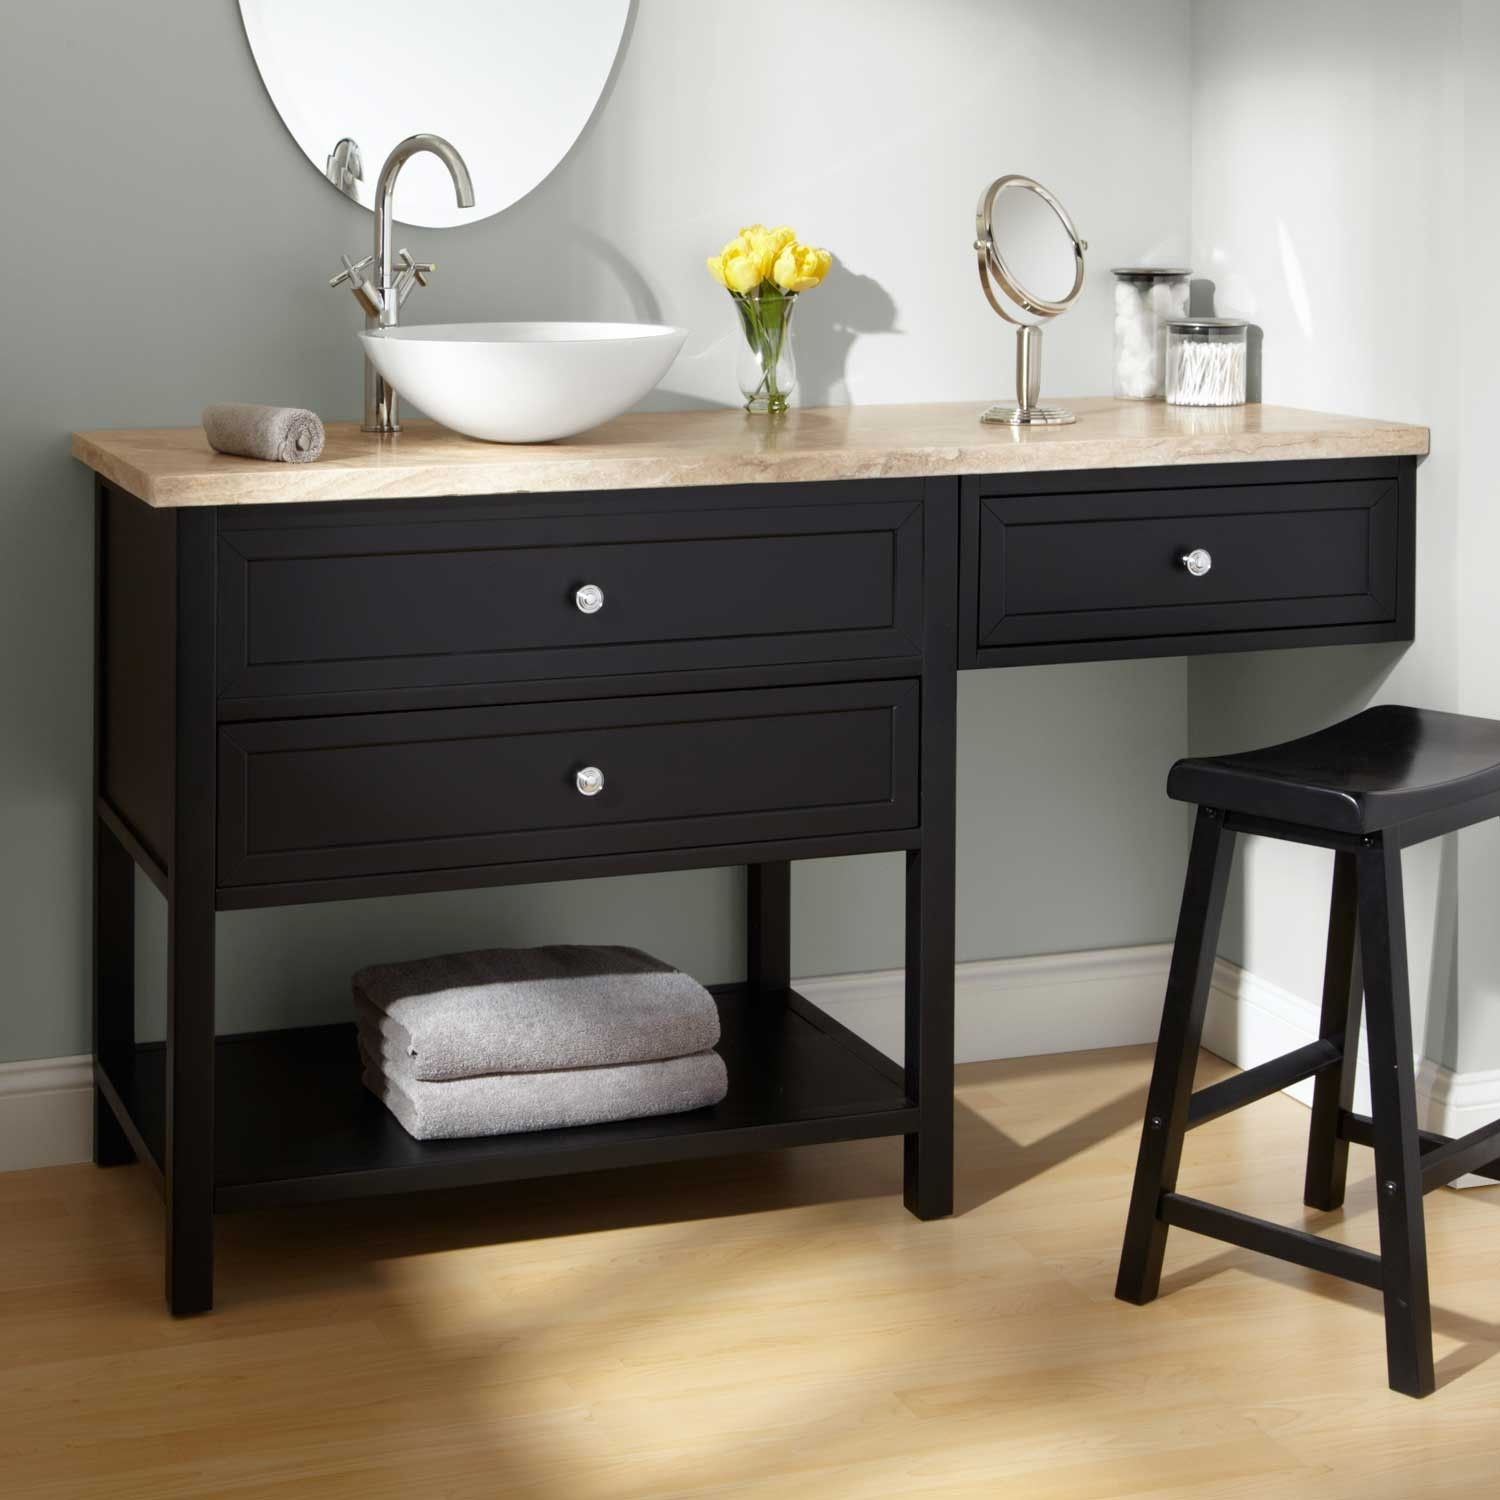 Bathroom Furniture, Fixtures and Decor